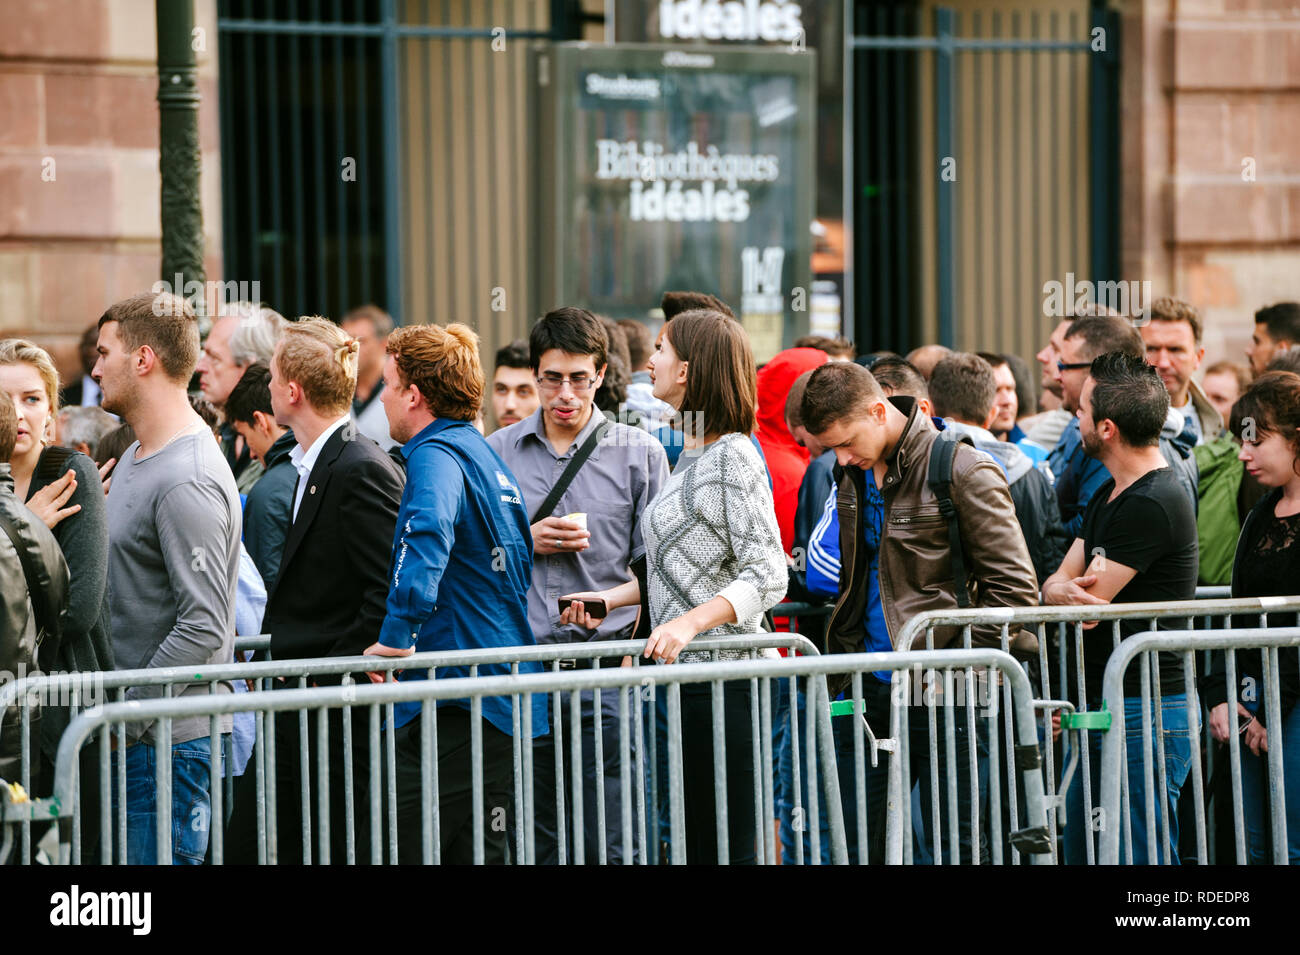 STRASBOURG, FRANCE - SEP, 19 2014: Large queue in front of Apple Store with customers waiting in line to buy the latest iPhone iPad Apple Watch and notebook Stock Photo